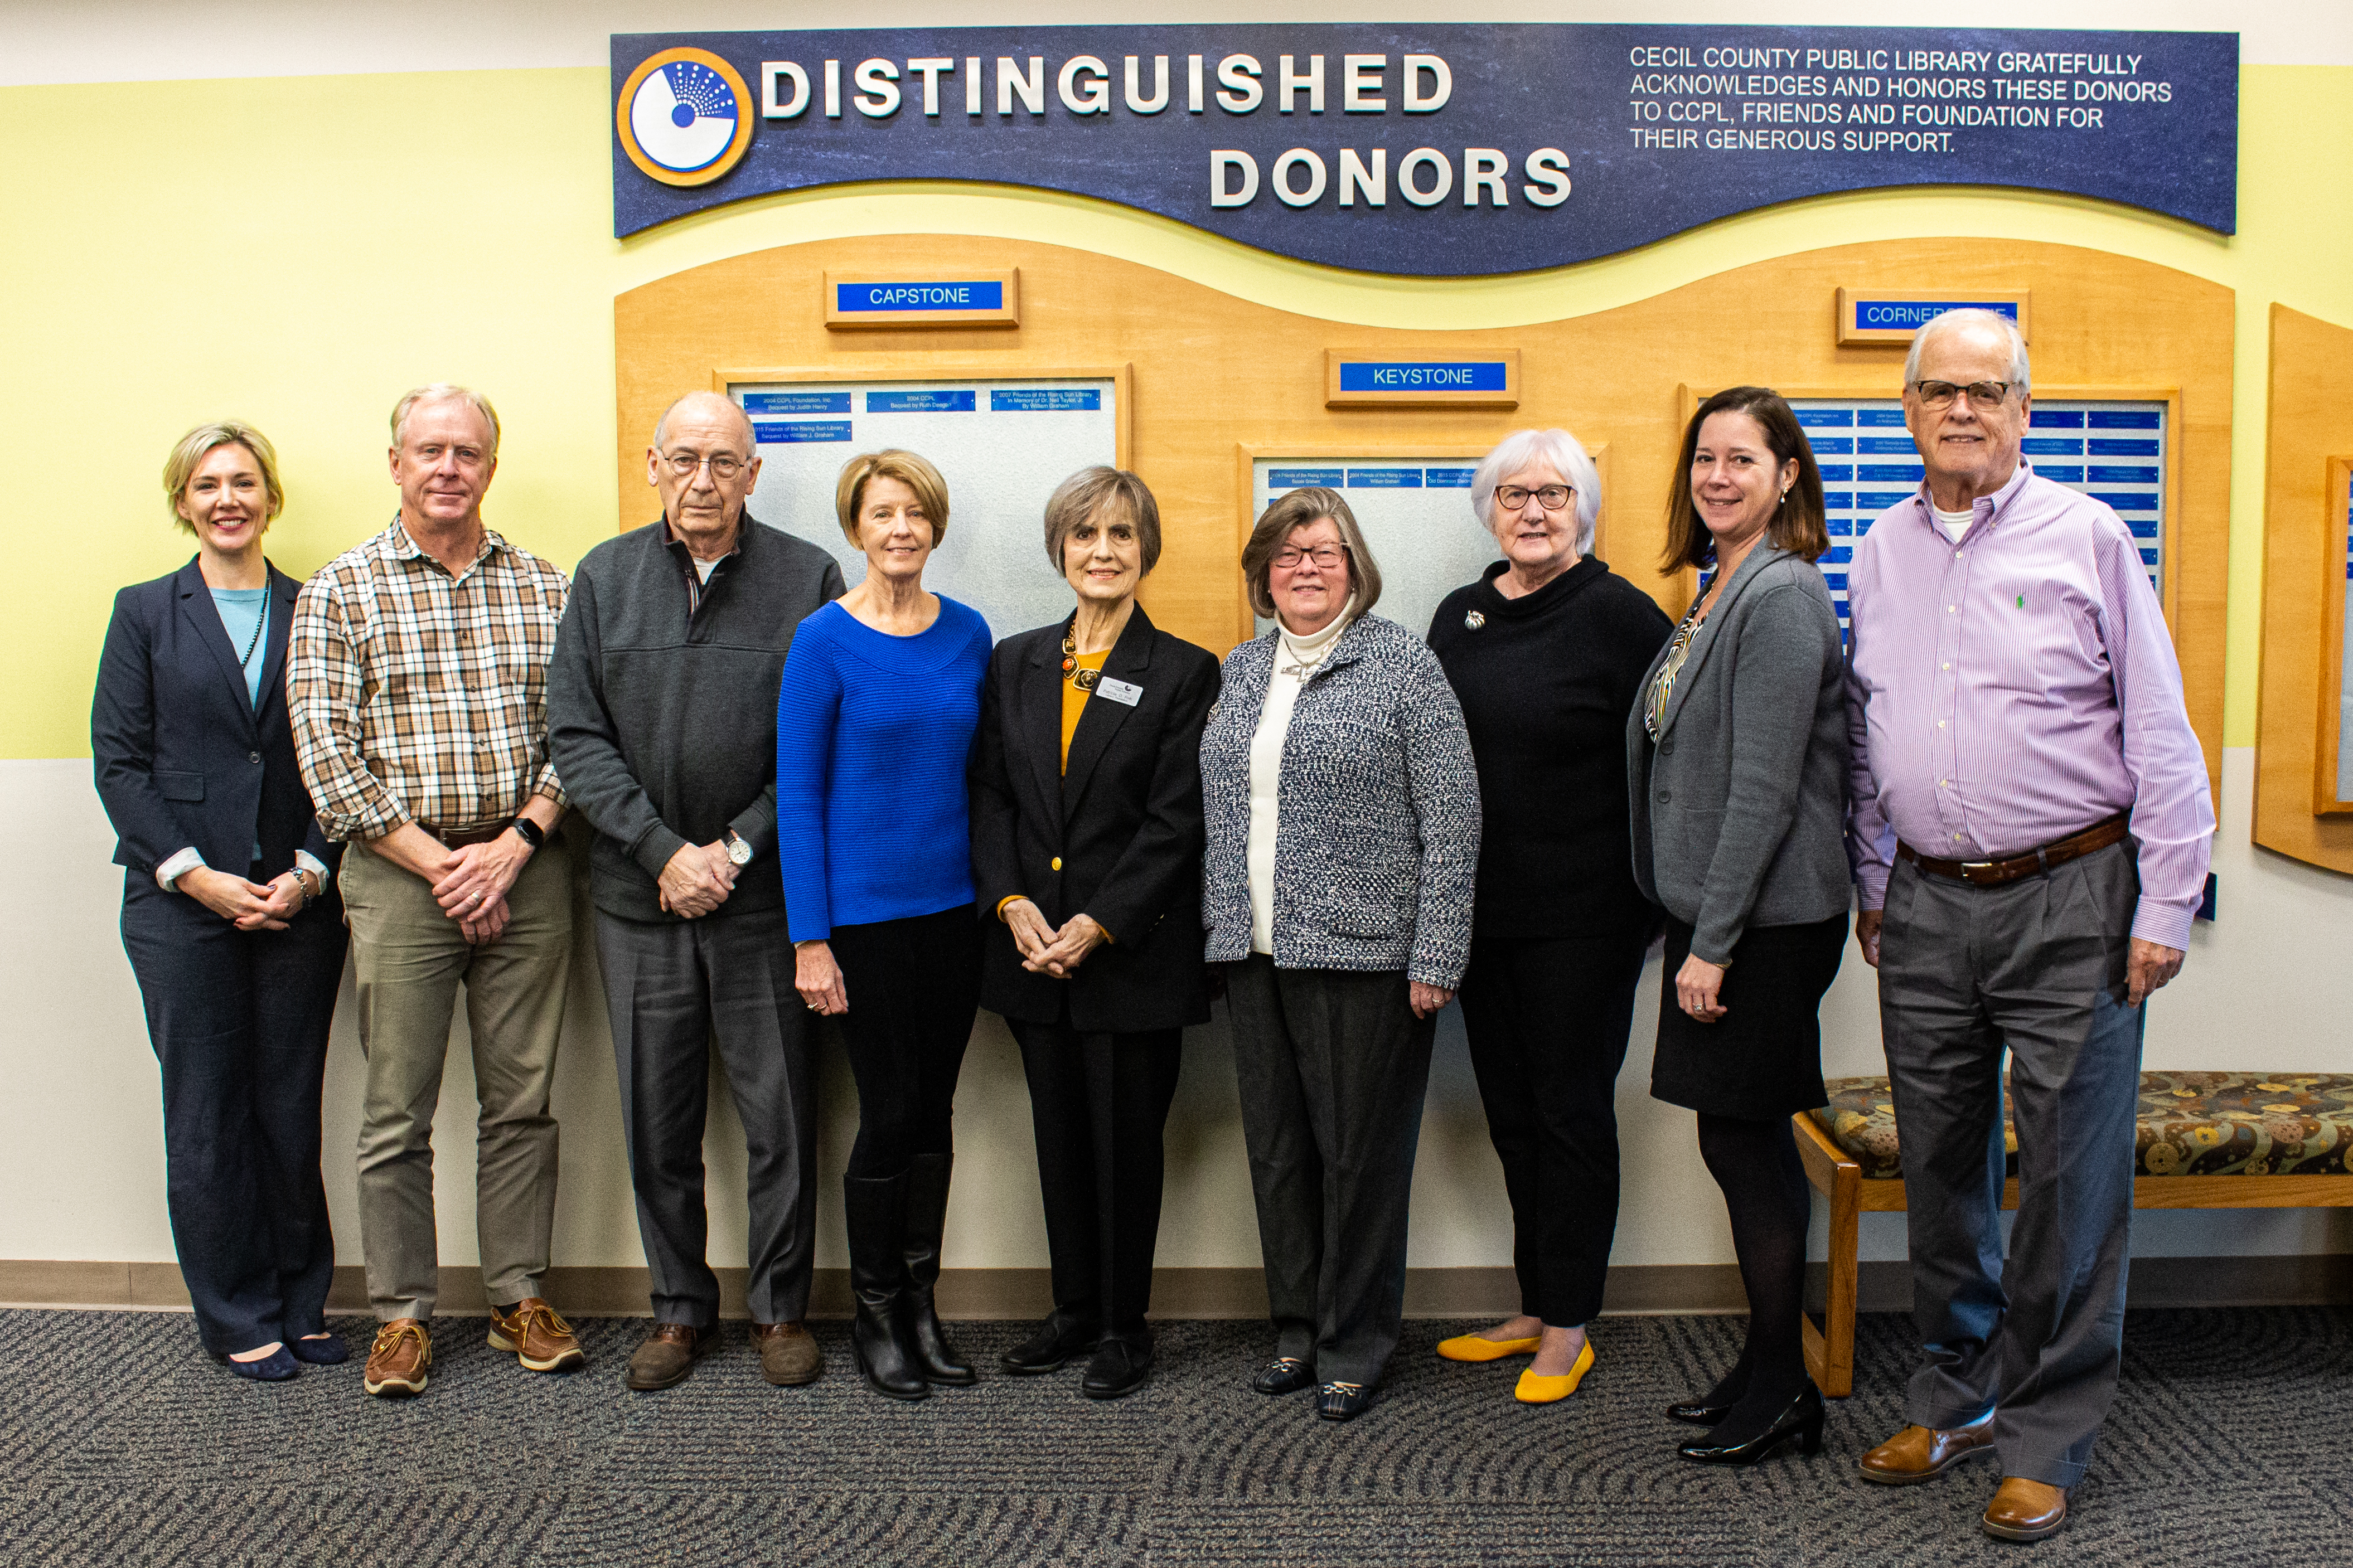 Friends Foundation members posing in front of the Distinguished Donors wall